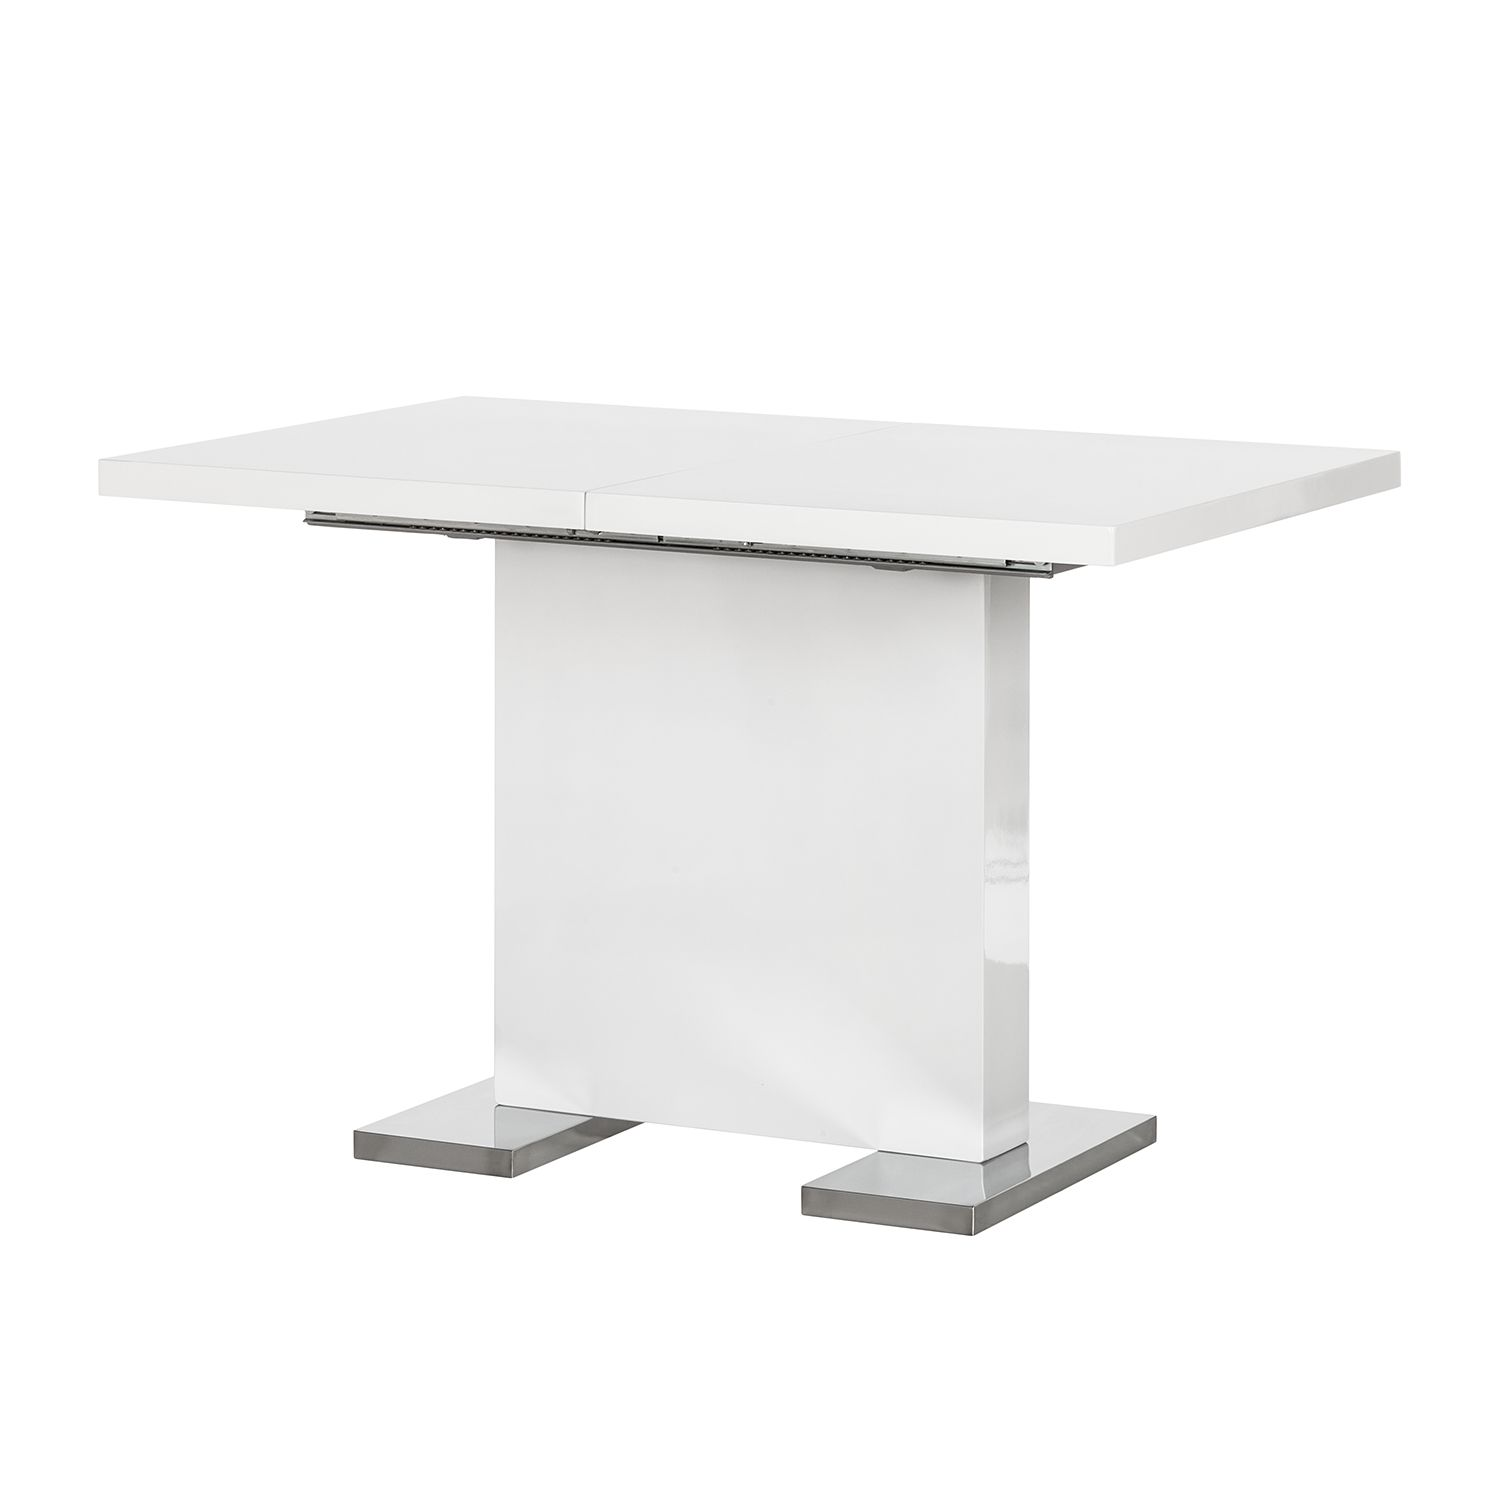 Table à manger Anne (extensible) - Blanc brillant, loftscape